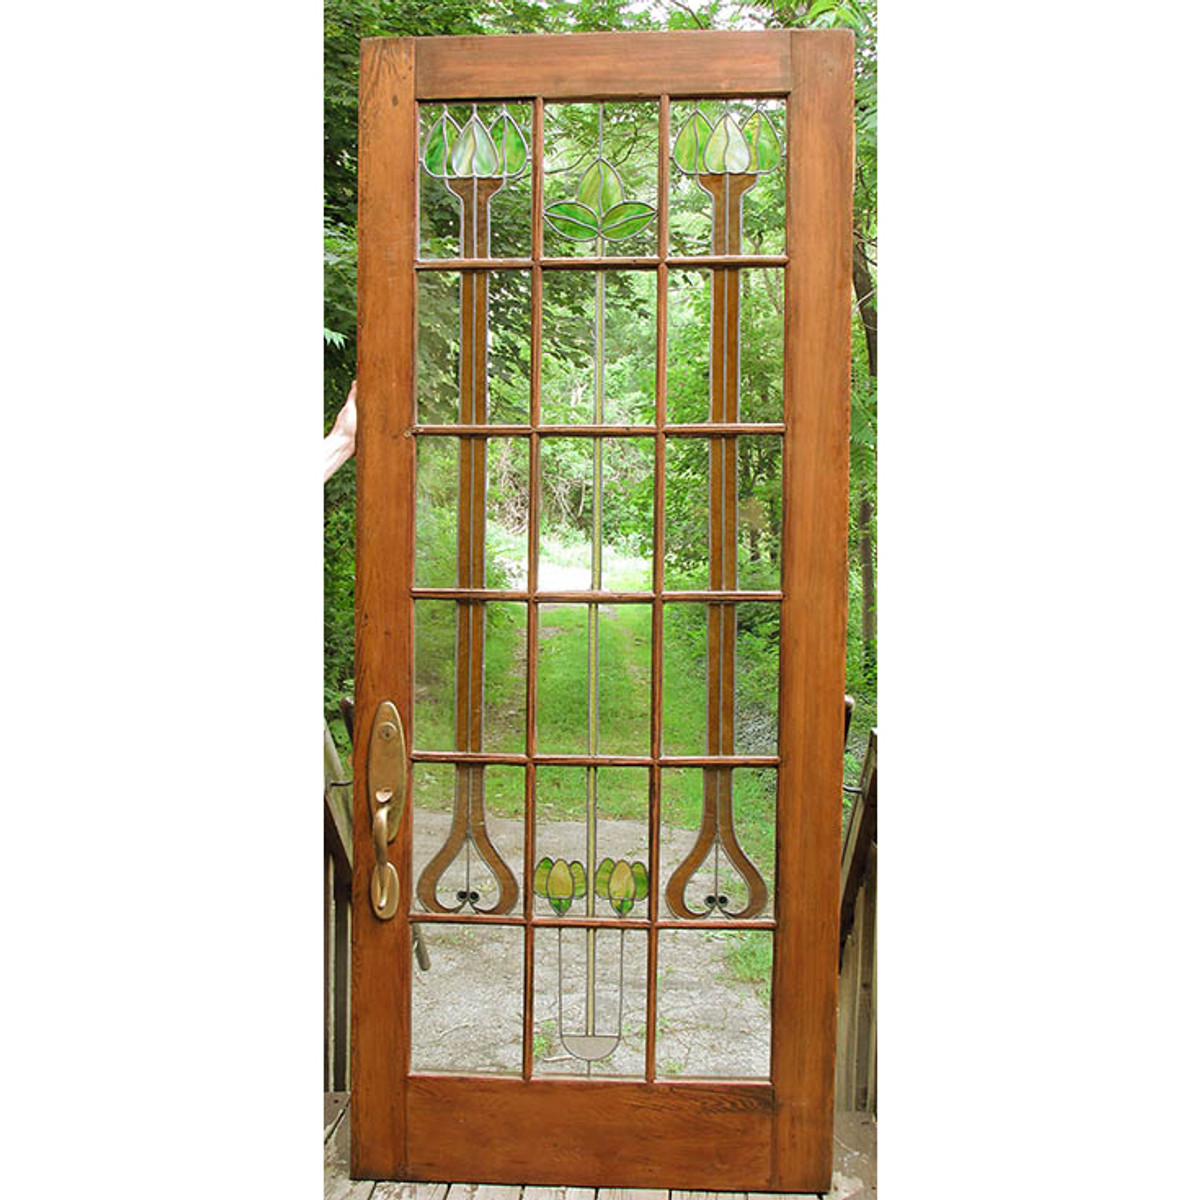 - D15126 - Antique Stained Glass Interior Door 38